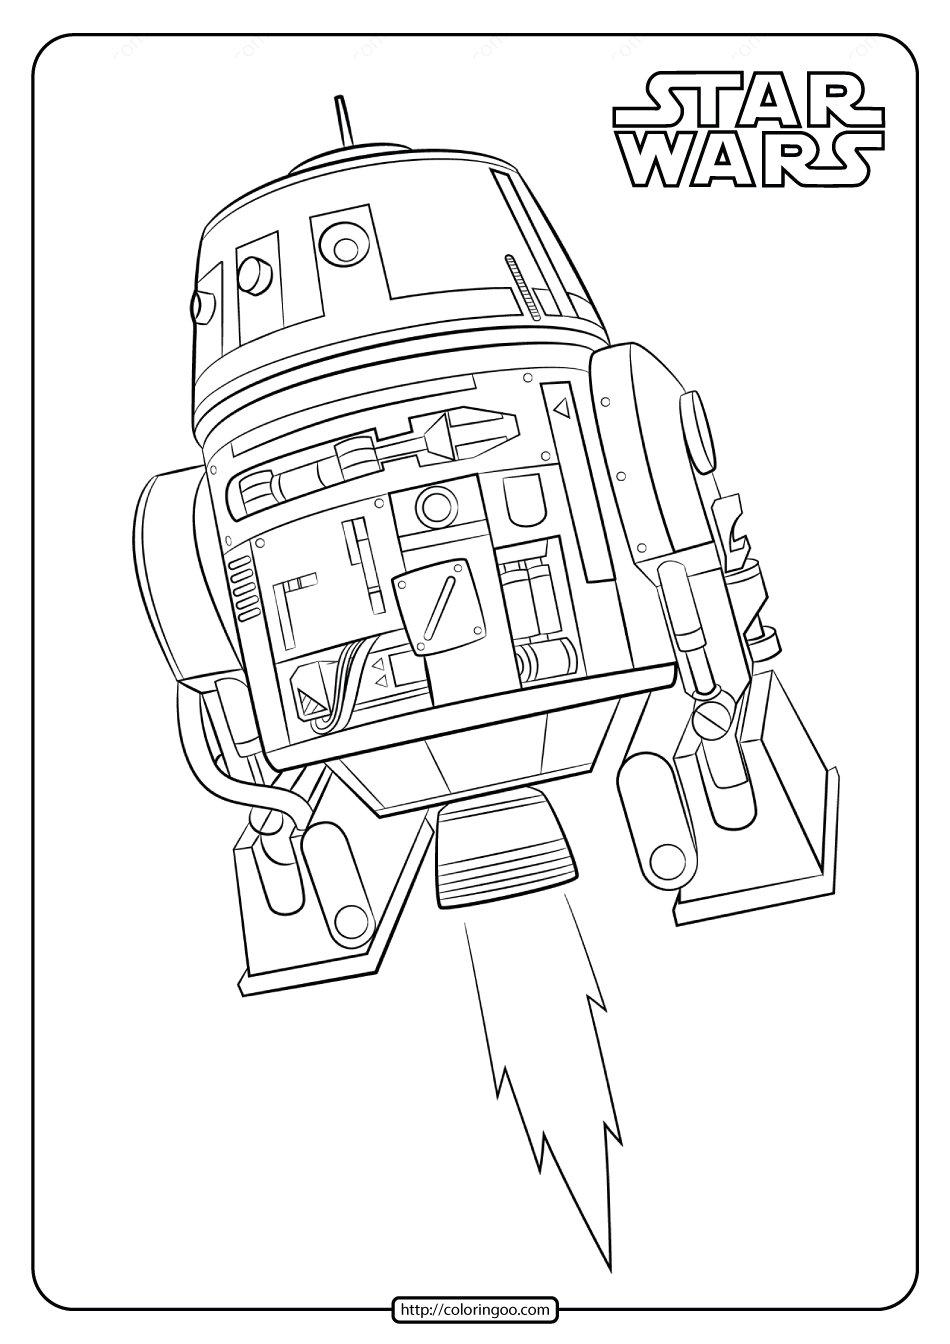 r2d2 printable r2 d2 coloring pages coloring home r2d2 printable